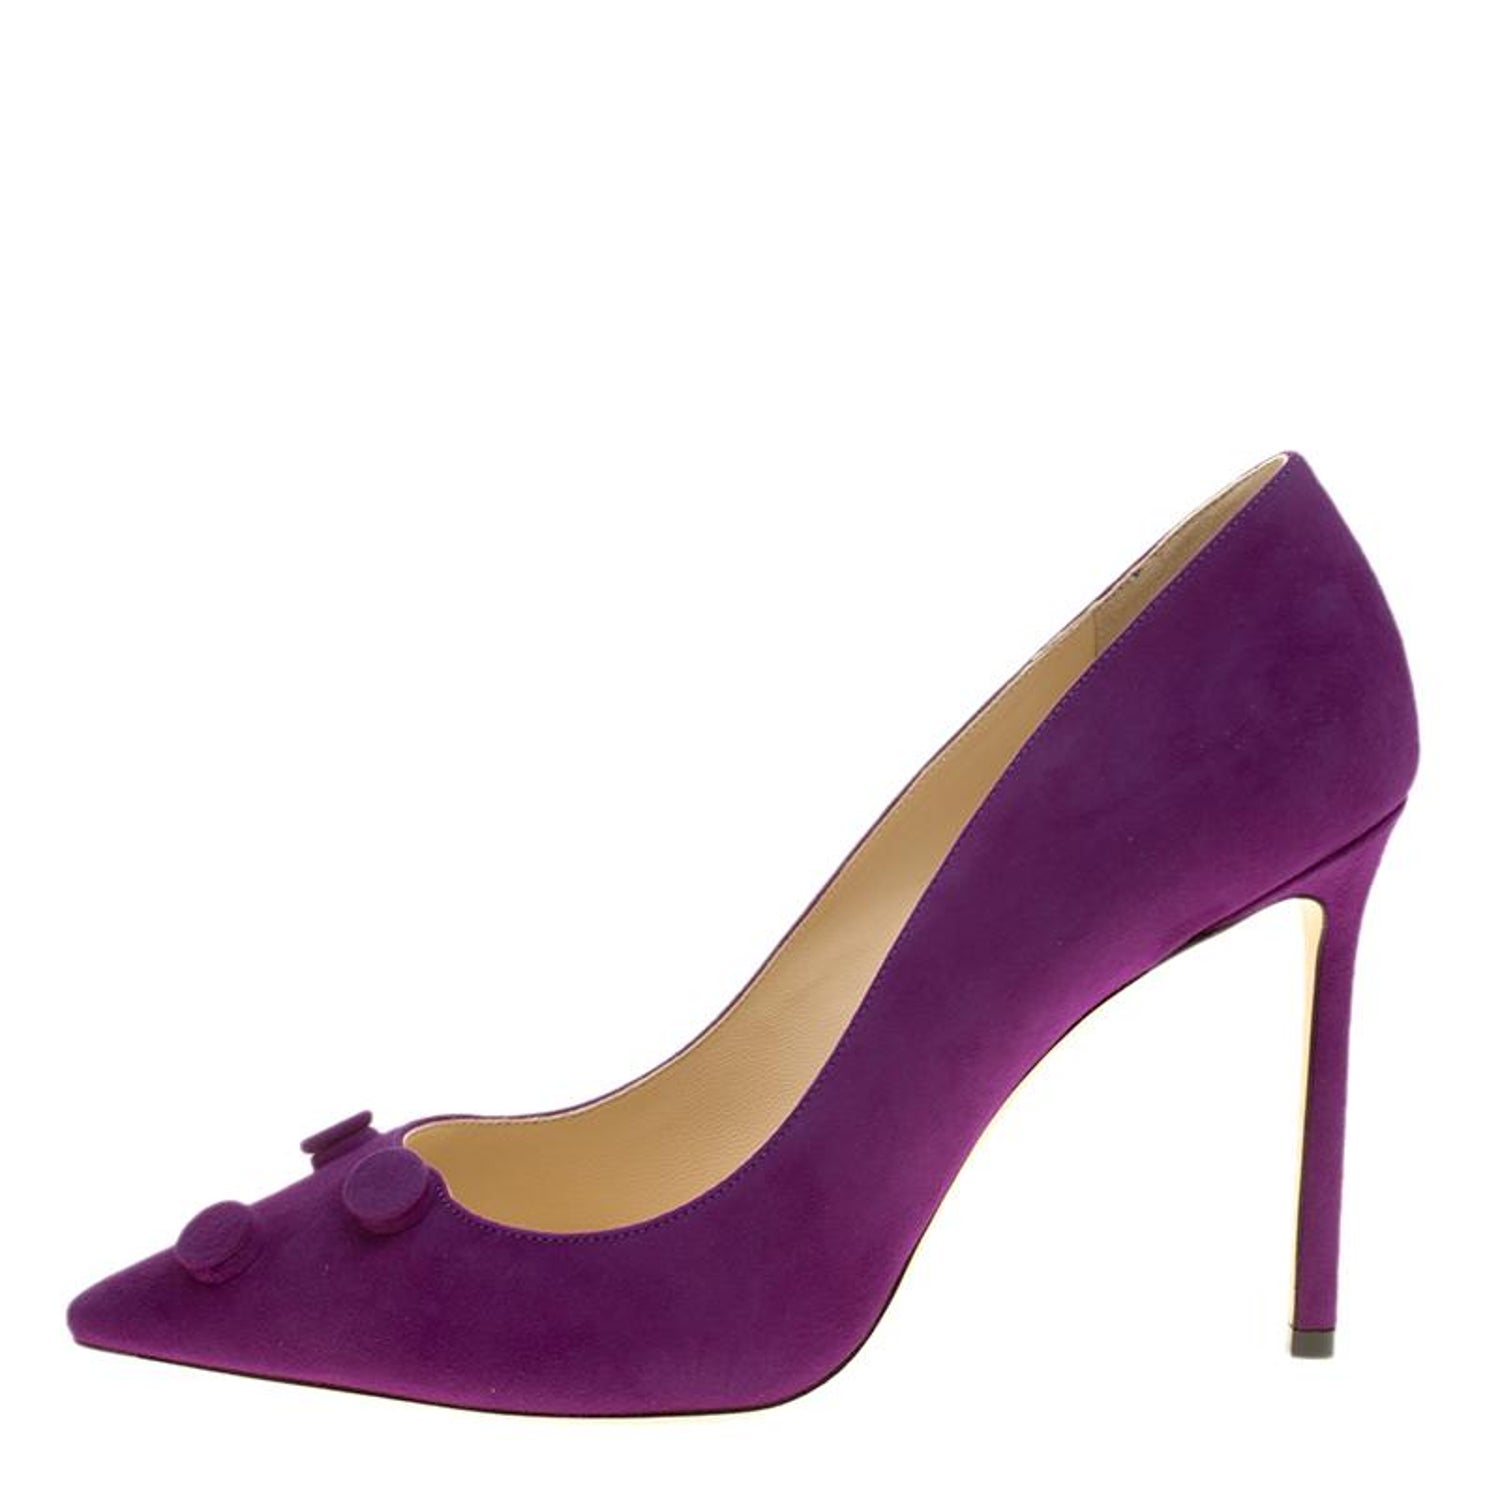 6d2976d421a Jimmy Choo Madeline Purple Suede Jasmine Button Embellished Pointed Toe  Pumps Si For Sale at 1stdibs